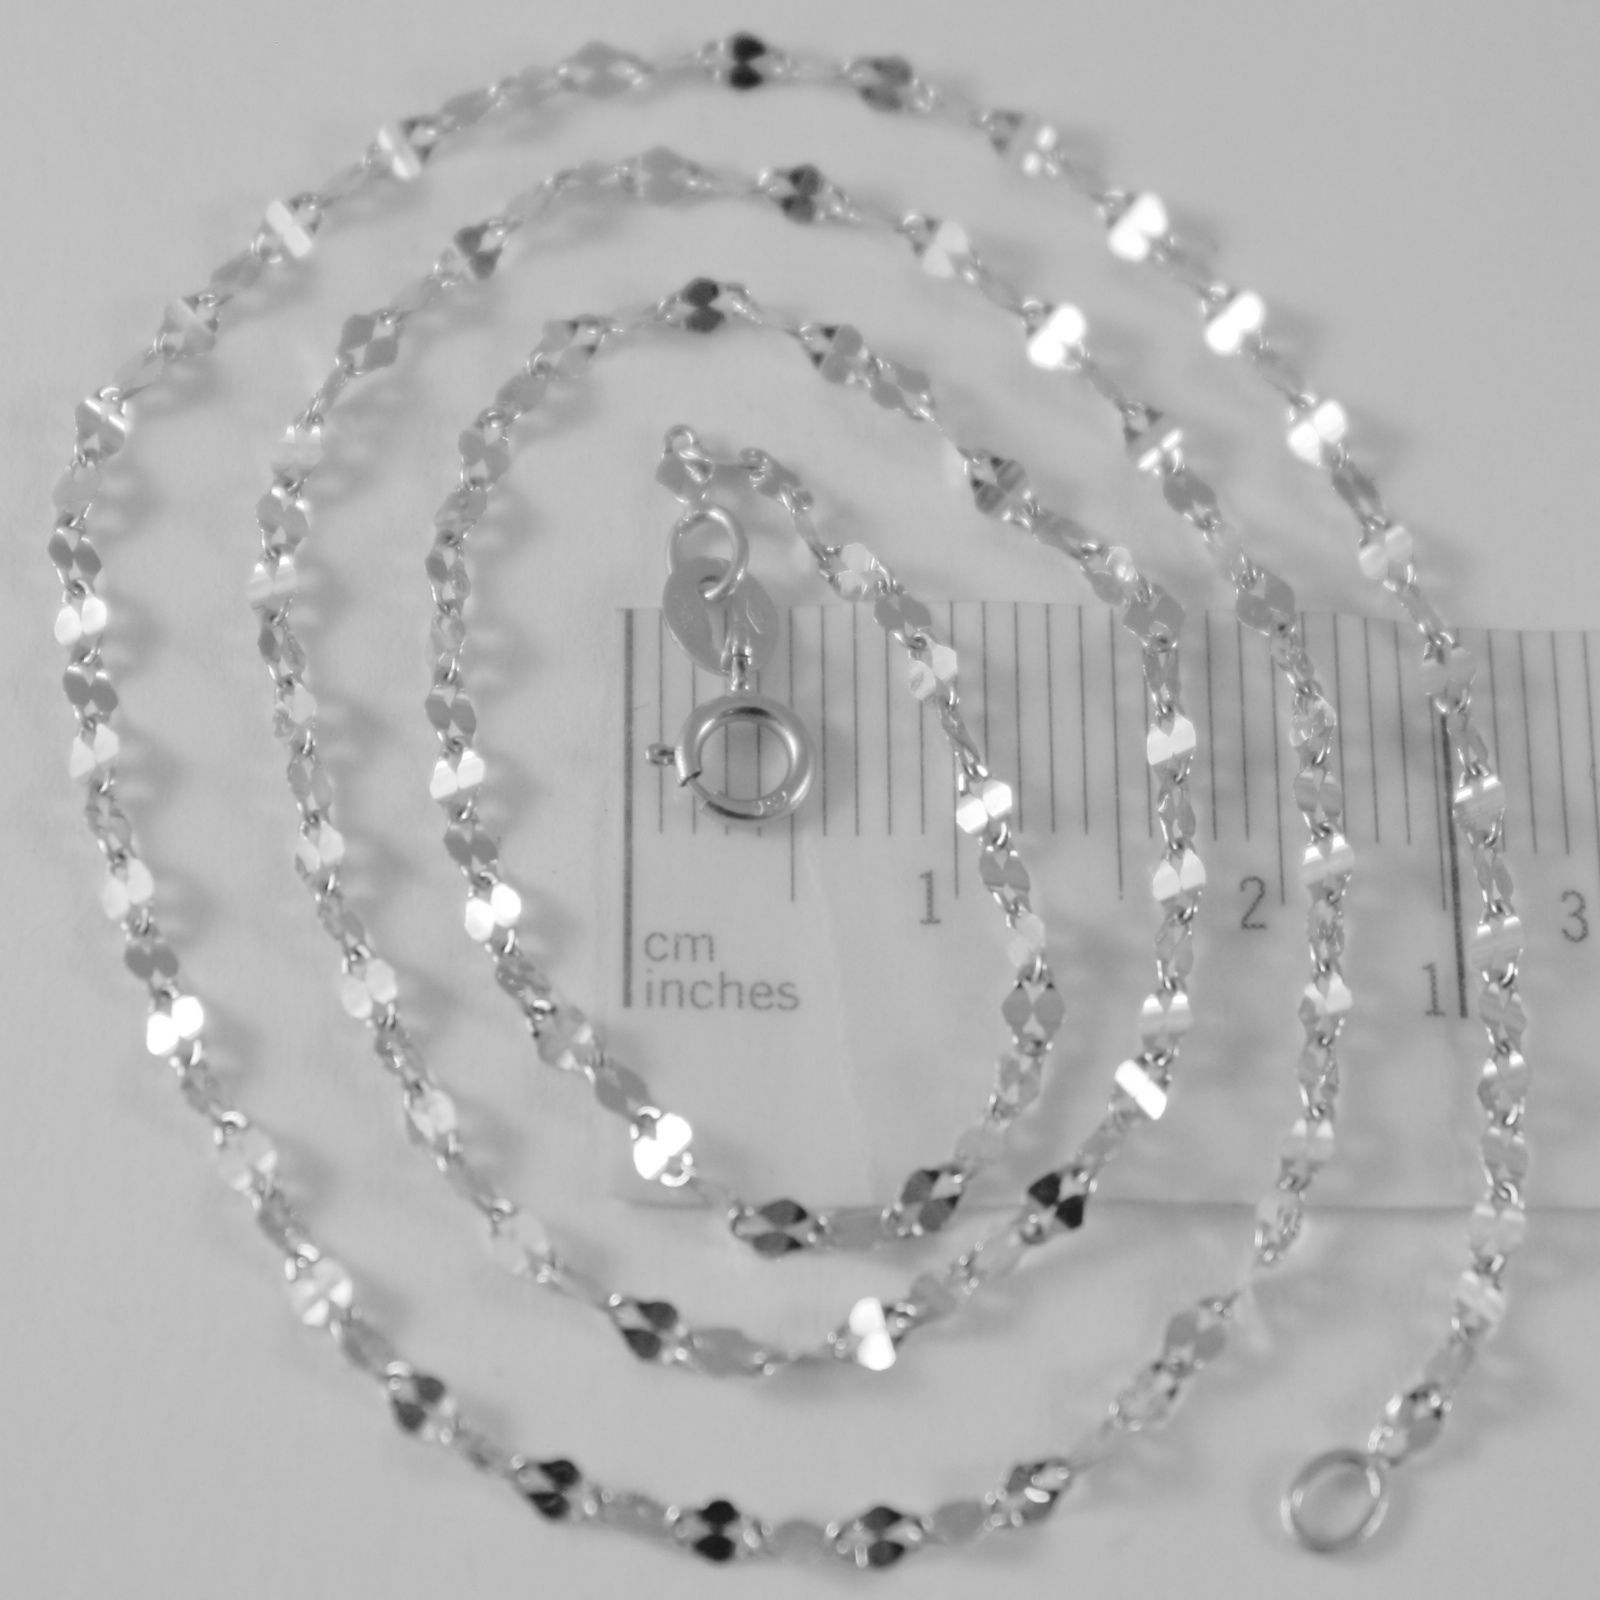 SOLID 18K WHITE GOLD FLAT BRIGHT KITE CHAIN 20 INCHES, 2.2 MM MADE IN ITALY